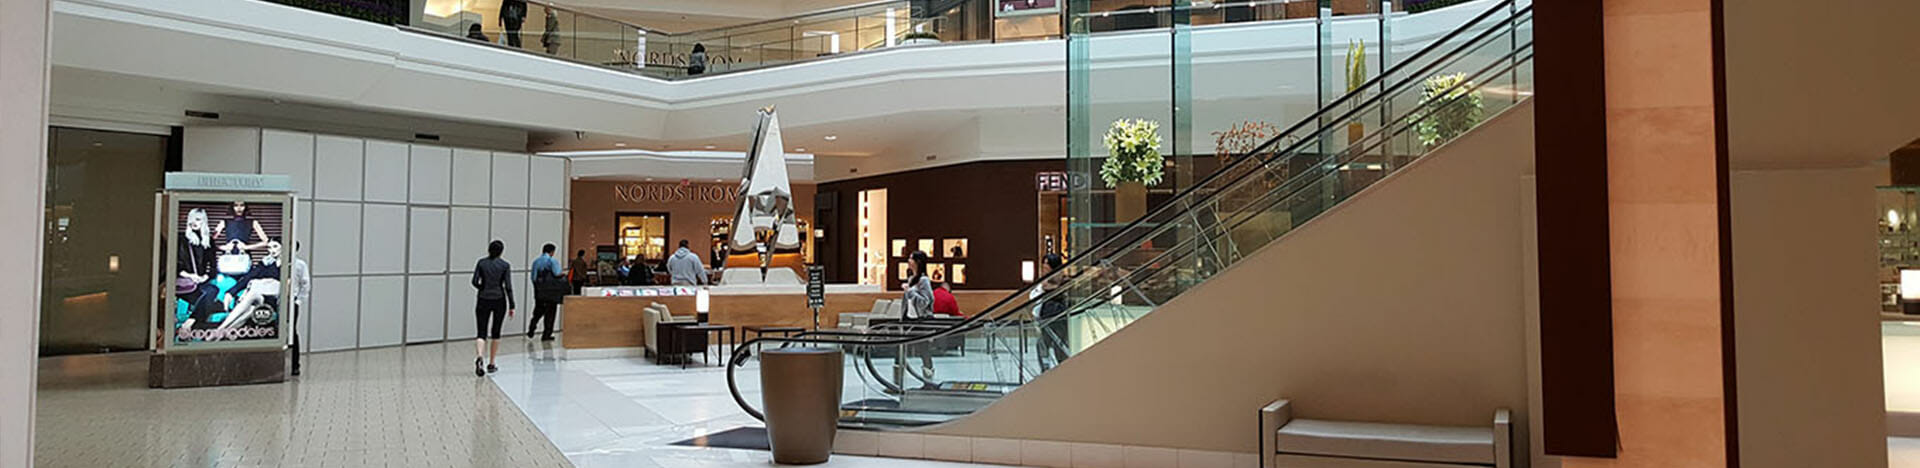 mall and retail stores